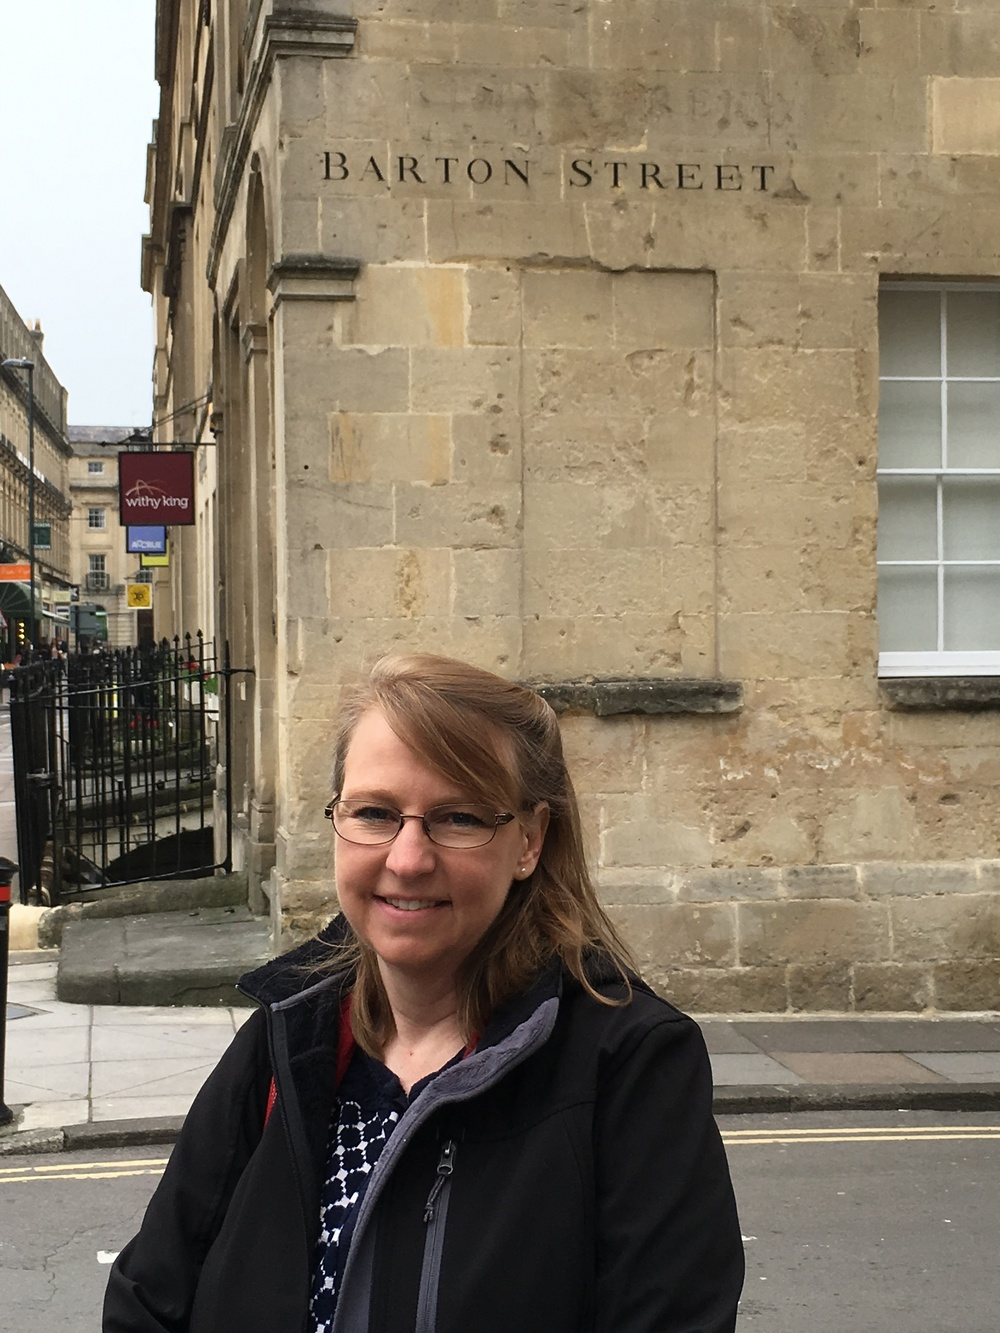 Apparently there was a stonemason with the last name of Barton in Bath, who built a lot of buildings. My mother's maiden name is Barton, so she decided to take a picture with every Barton sign we came across.